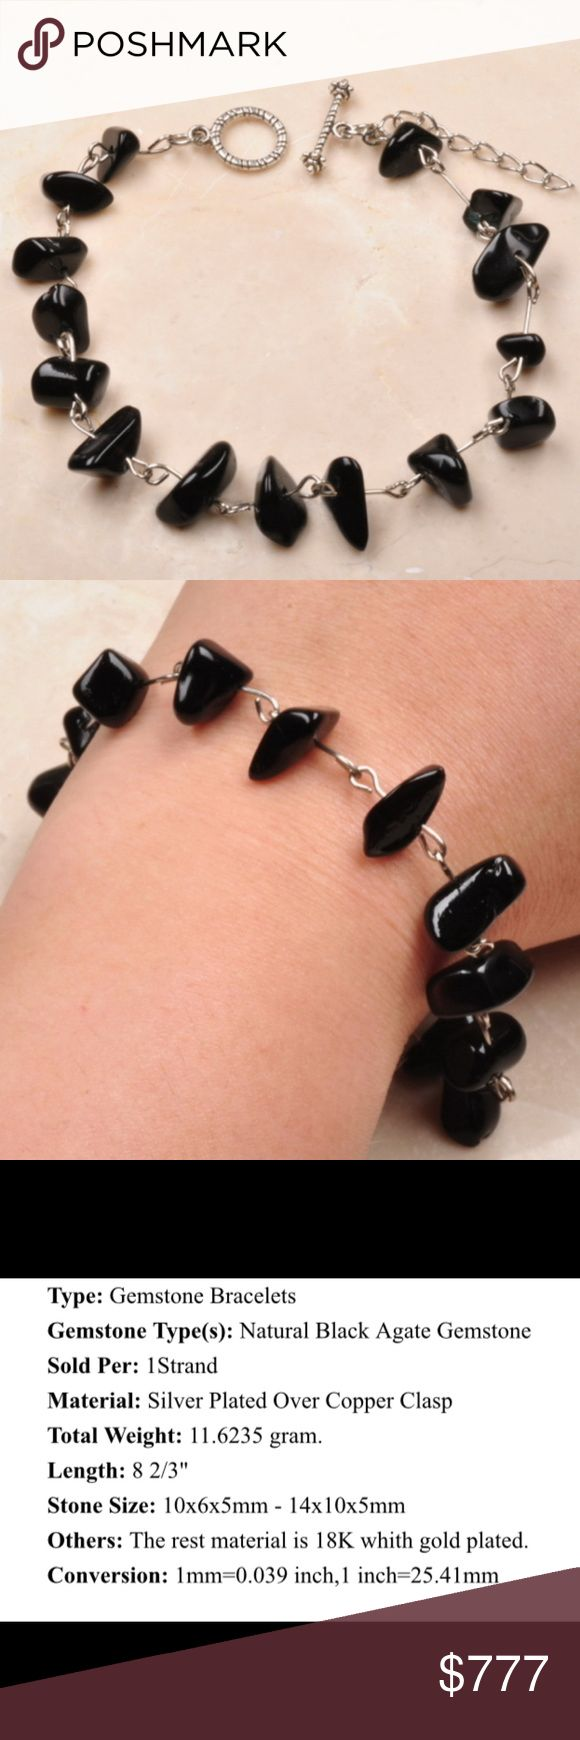 Bundle offer 18k gold plated amp white gold plated necklace 2 ring - Coming Soon Black Agate Gemstone Bracelet Boutique